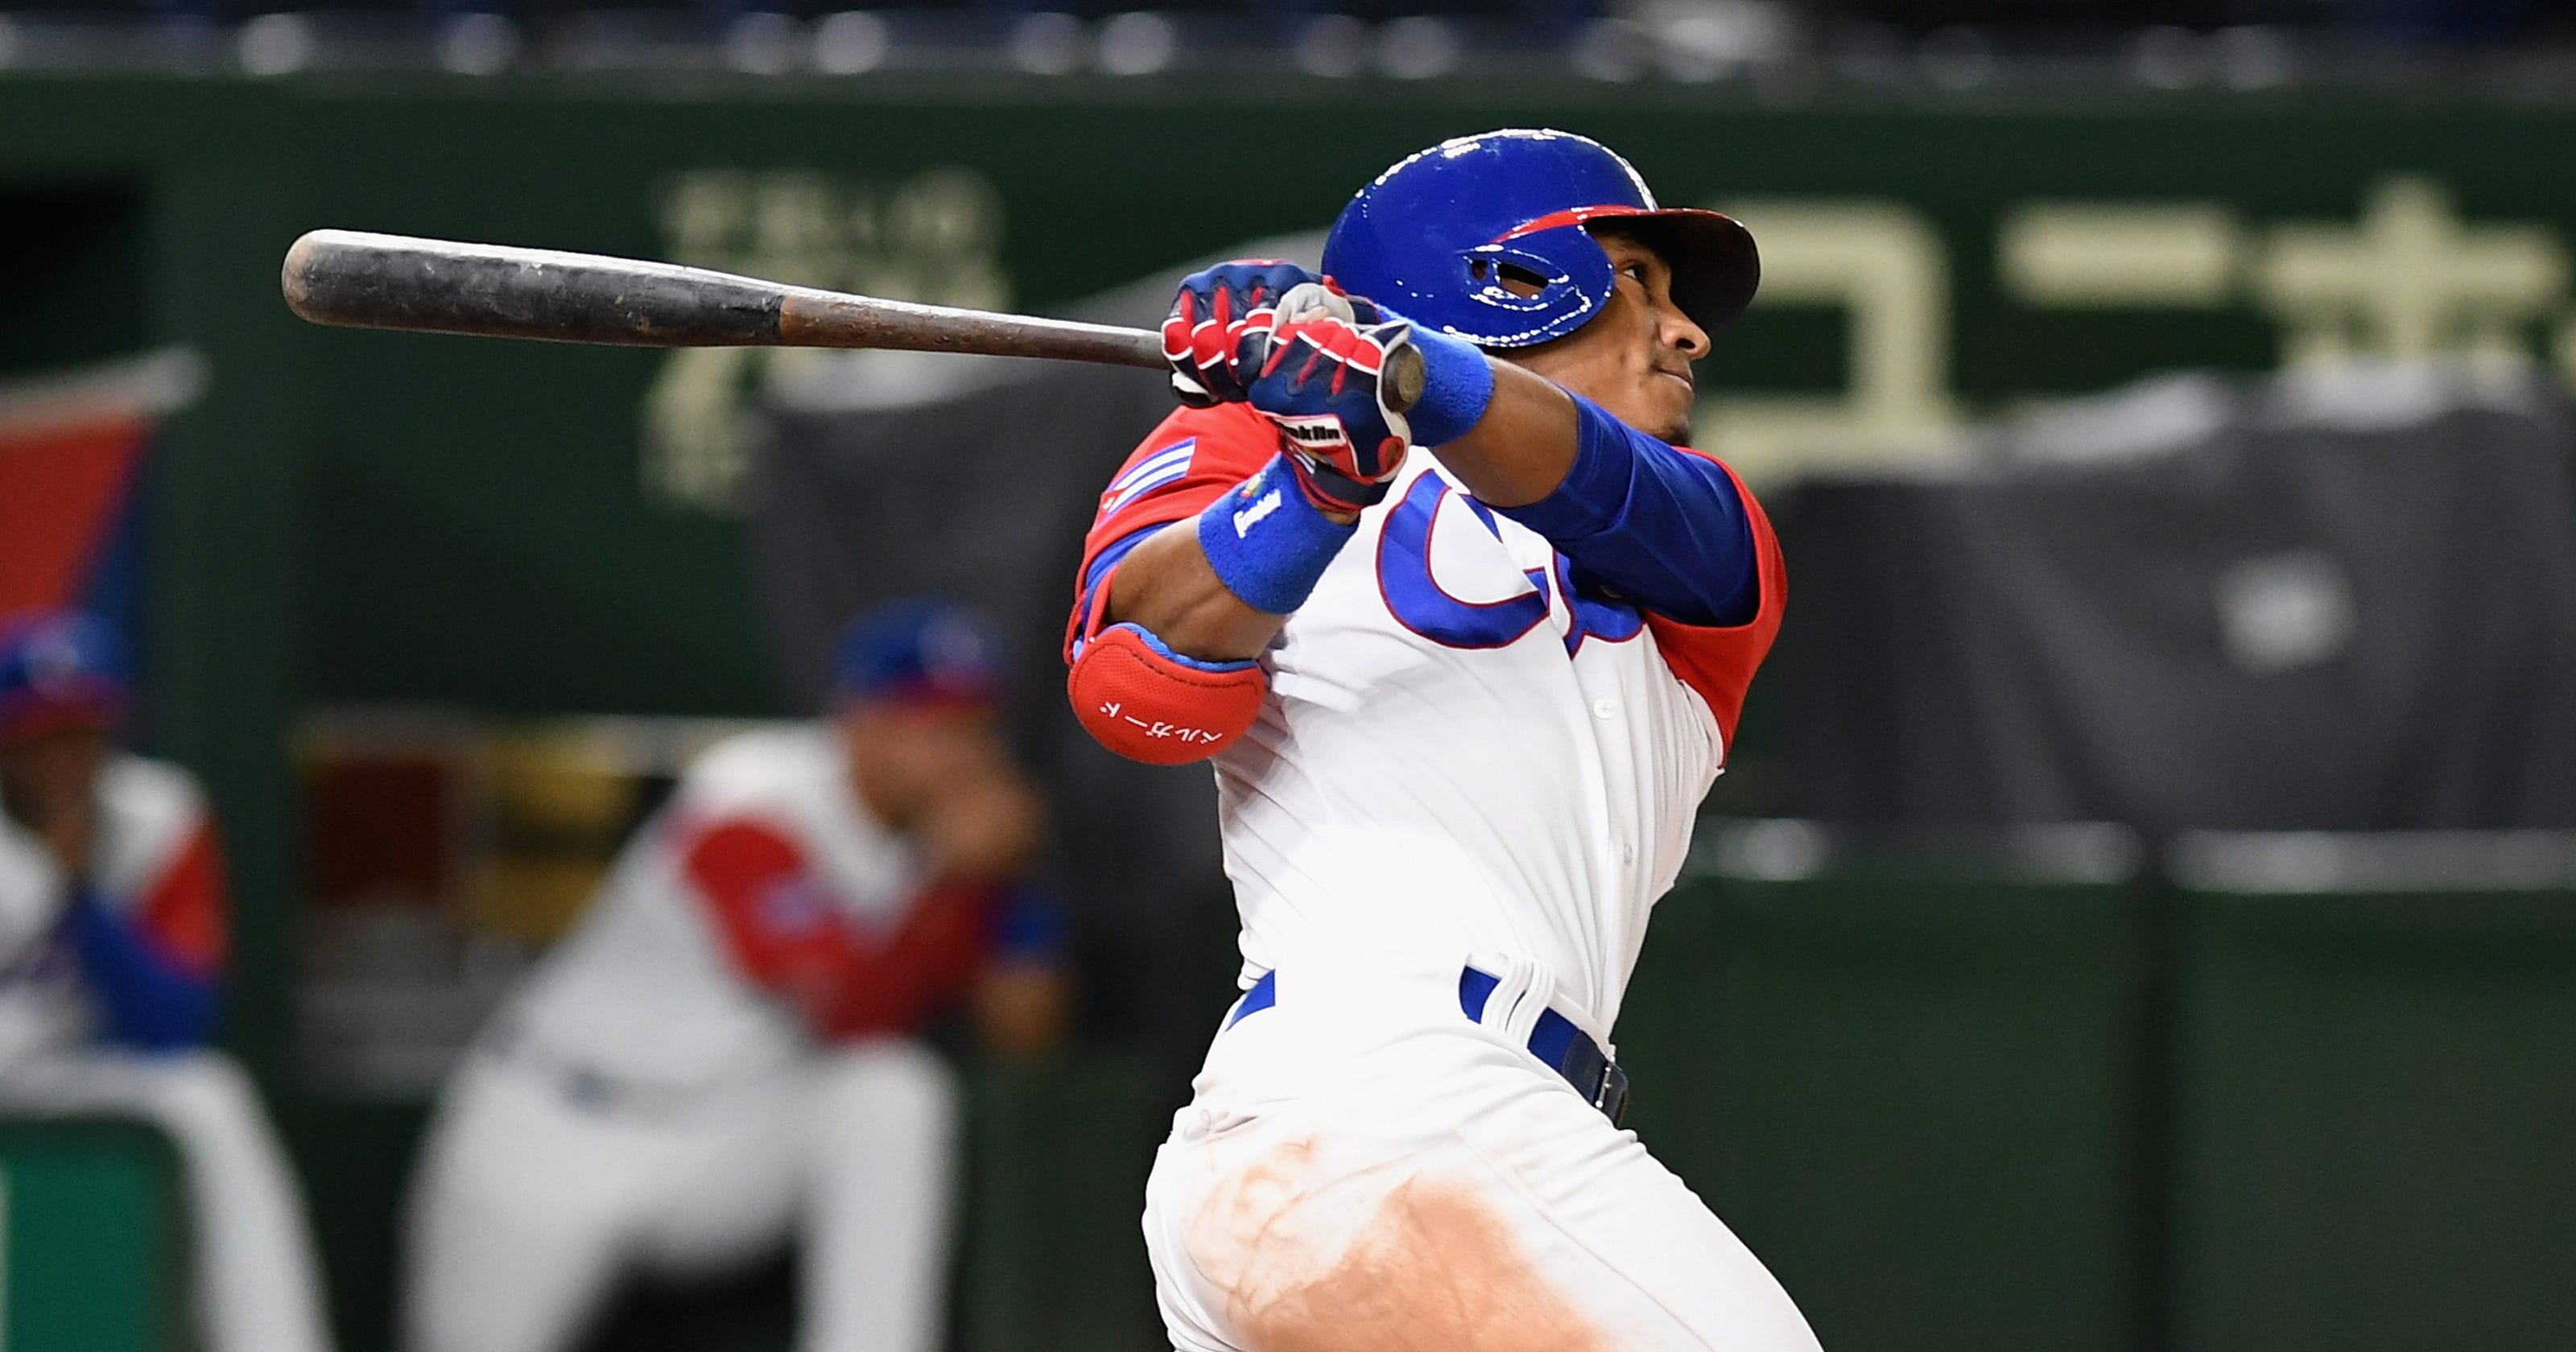 Cuba blanks China 6-0 for first win at World Baseball Classic